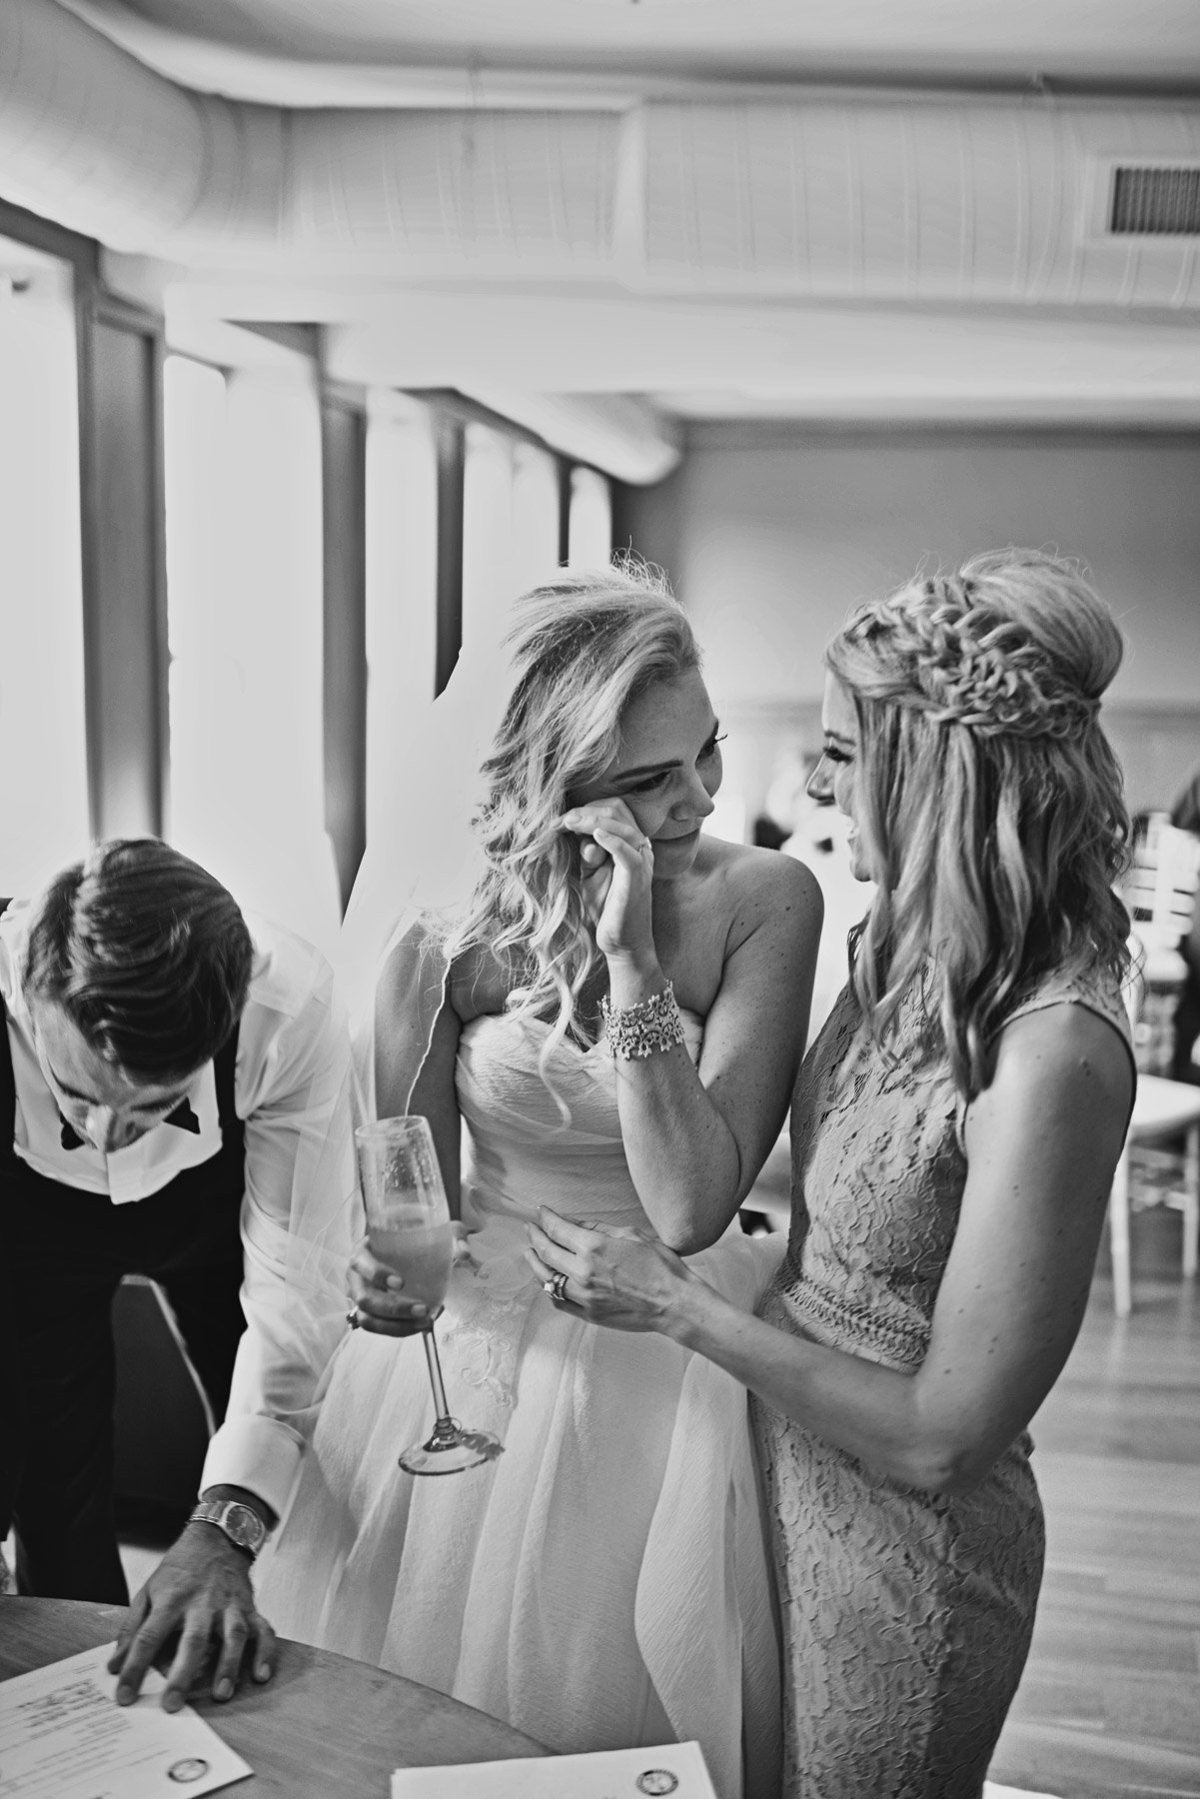 muse event center wedding photos minneapolis wedding photographer bryan newfield photography 46